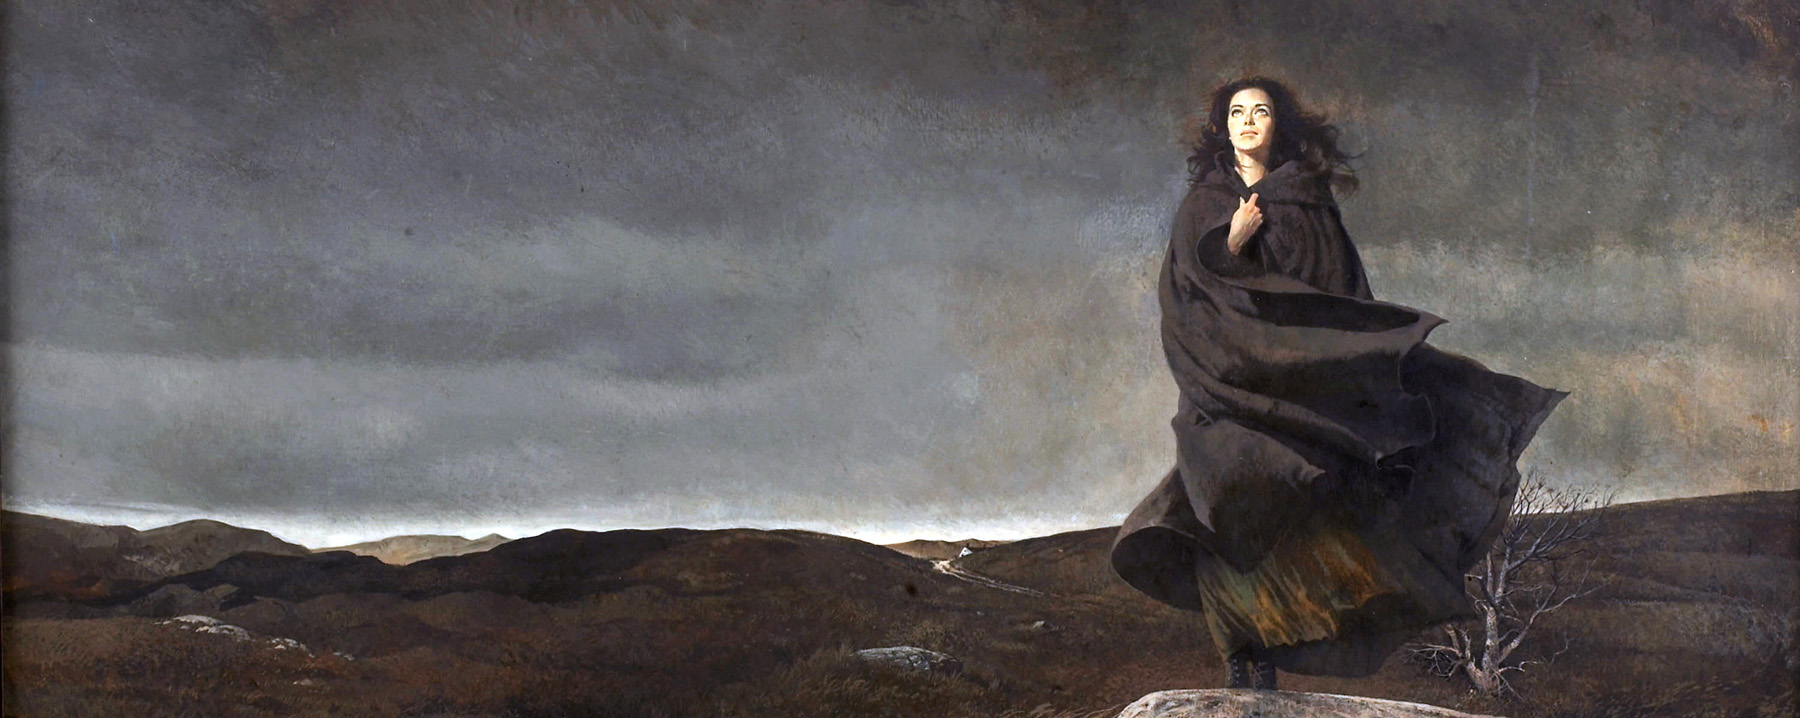 Robert McGinnis - Wuthering Heights